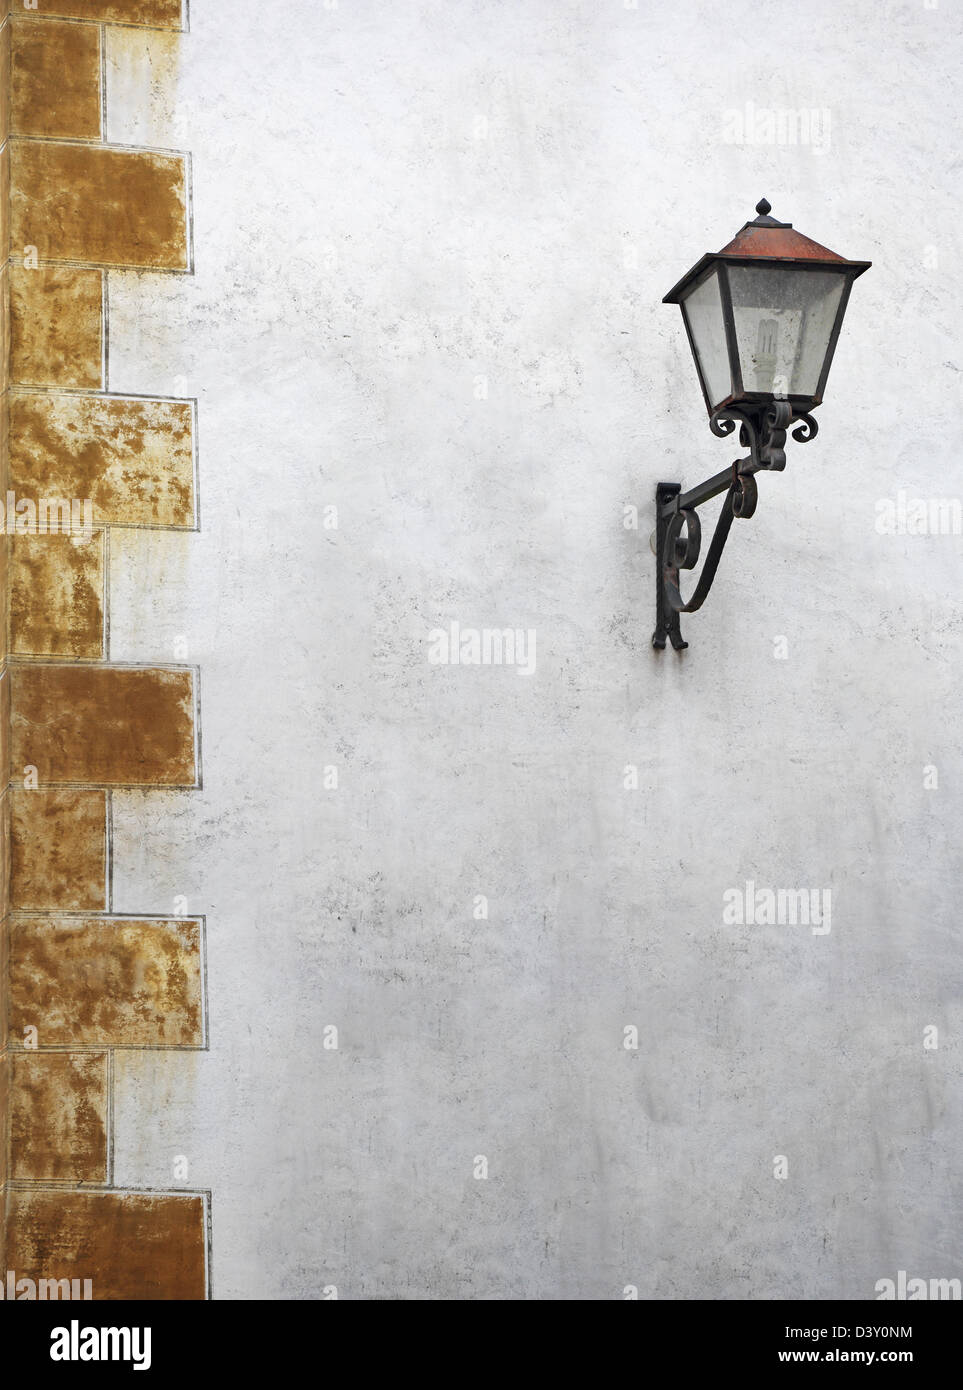 Classic street lantern with wrought iron, on the wall of the old house - Stock Image